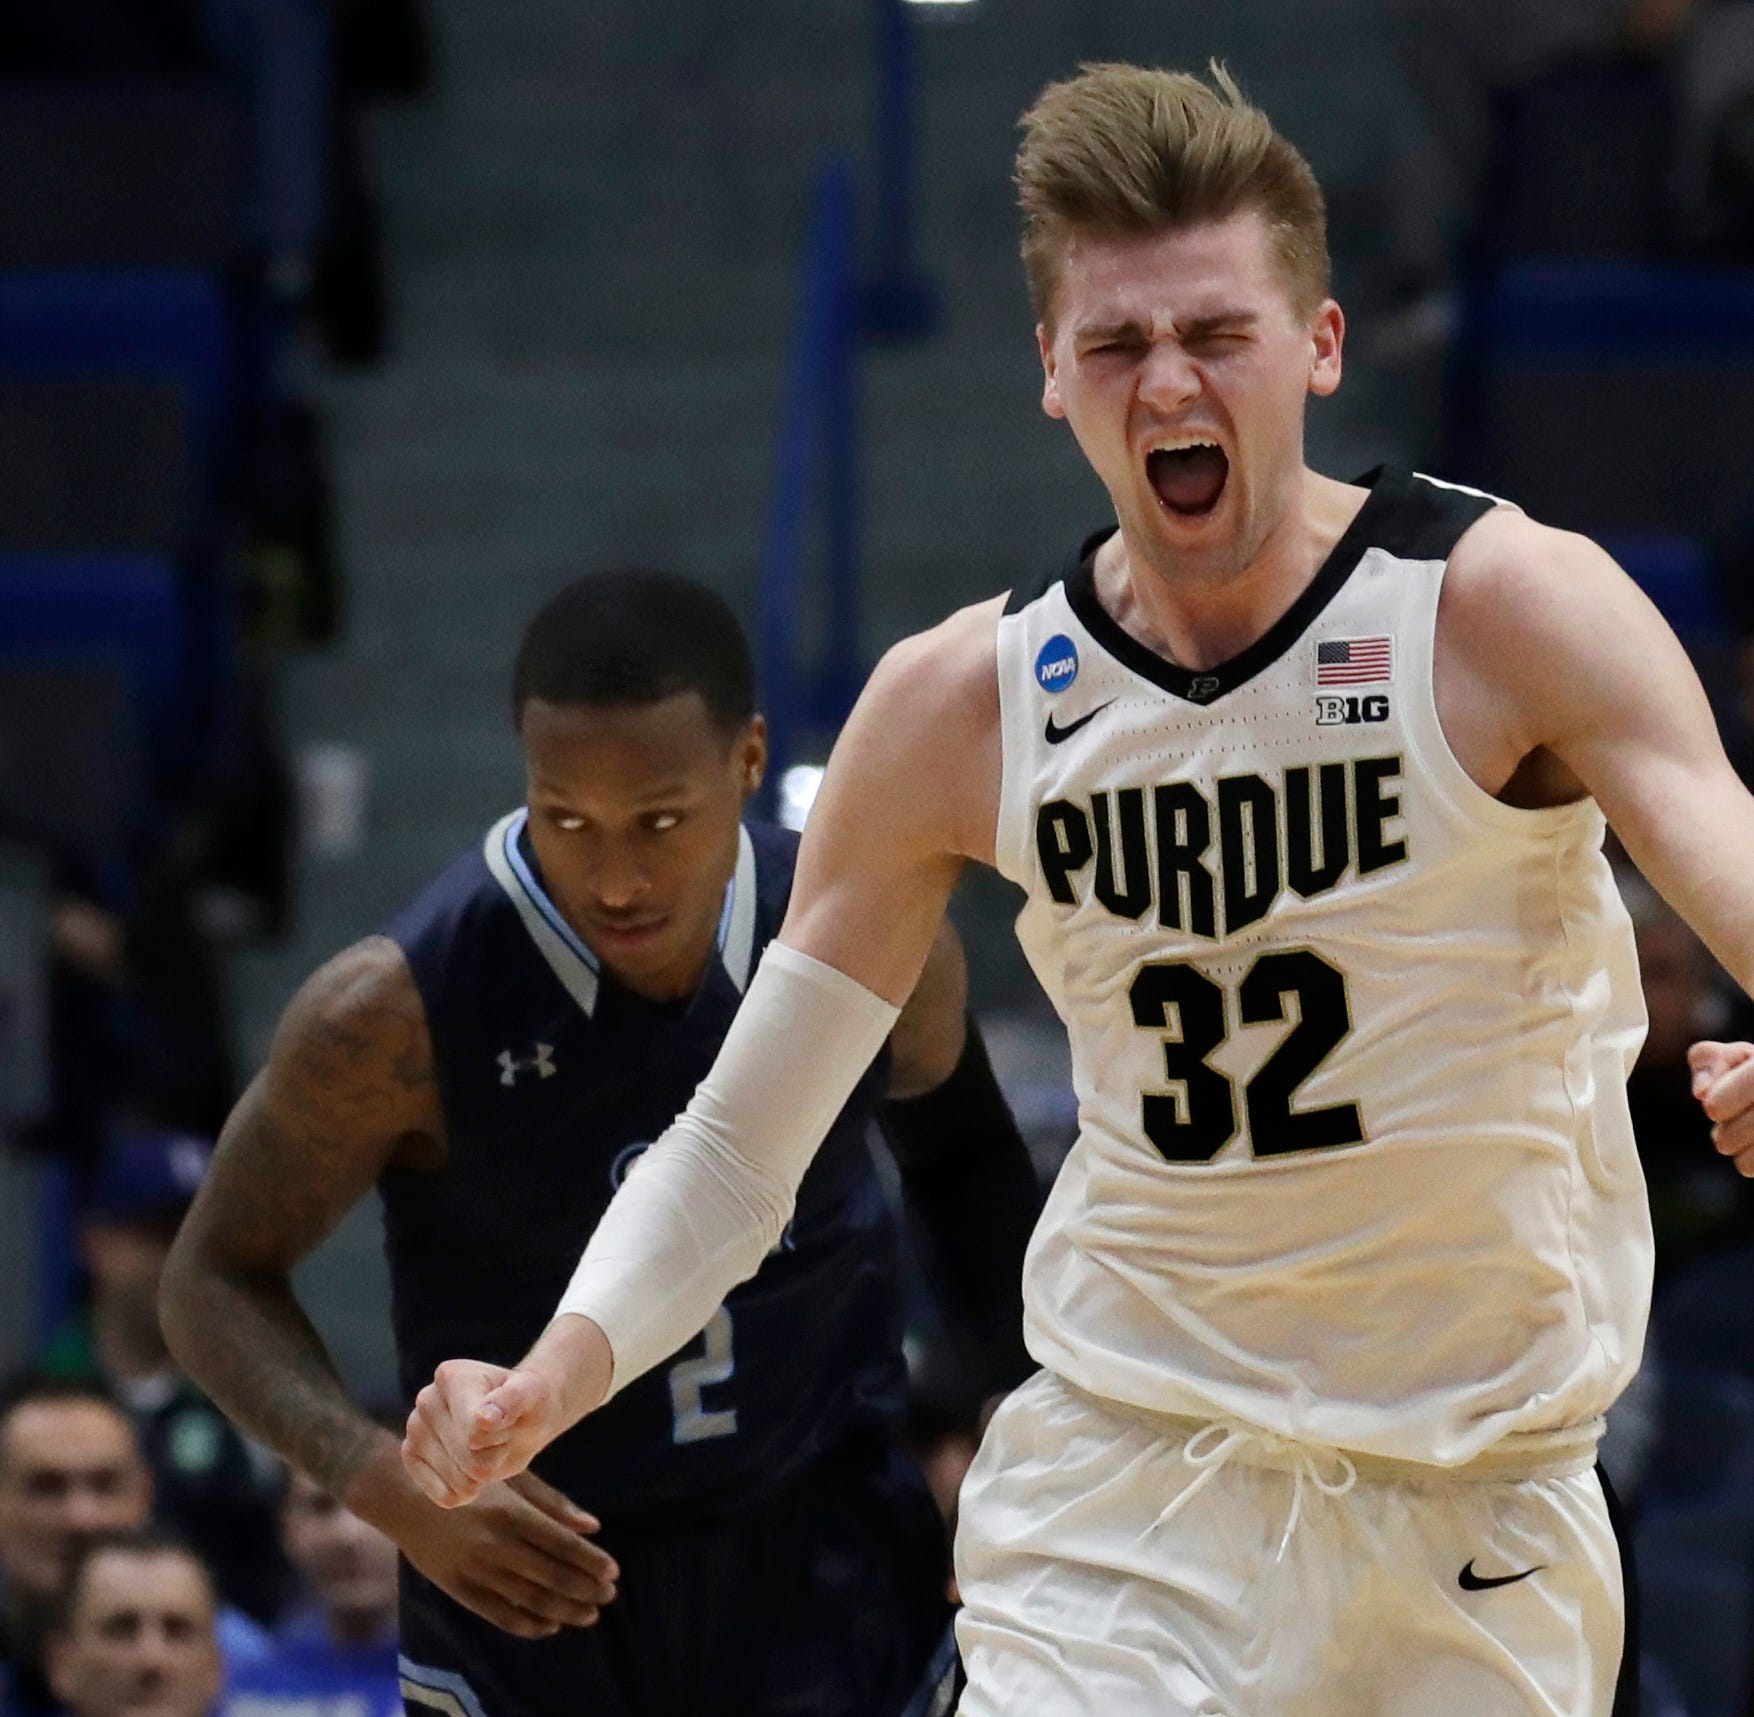 Purdue basketball beats Villanova behind career night from Carsen Edwards